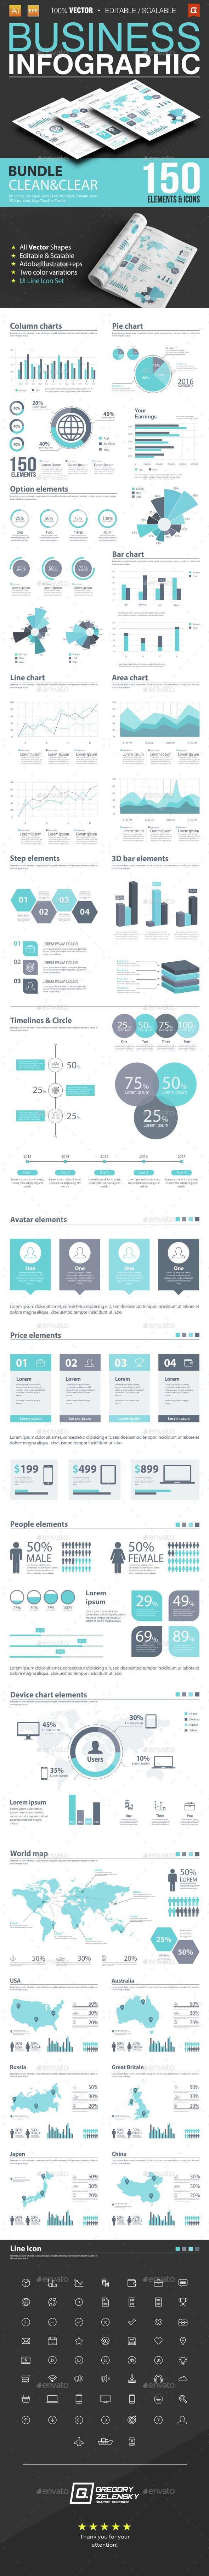 Business Infographic Bundle 150 Elements — Vector EPS #symbol #conceptual • Available here → https://graphicriver.net/item/business-infographic-bundle-150-elements/15326020?ref=pxcr